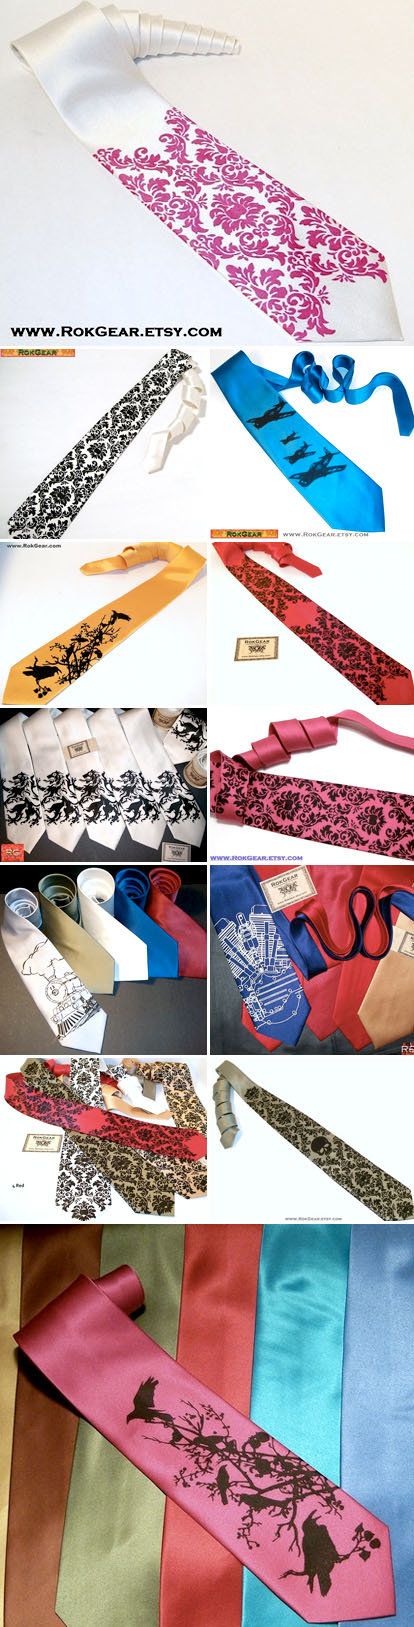 Screen printed wedding neckties from RokGear on Etsy.com